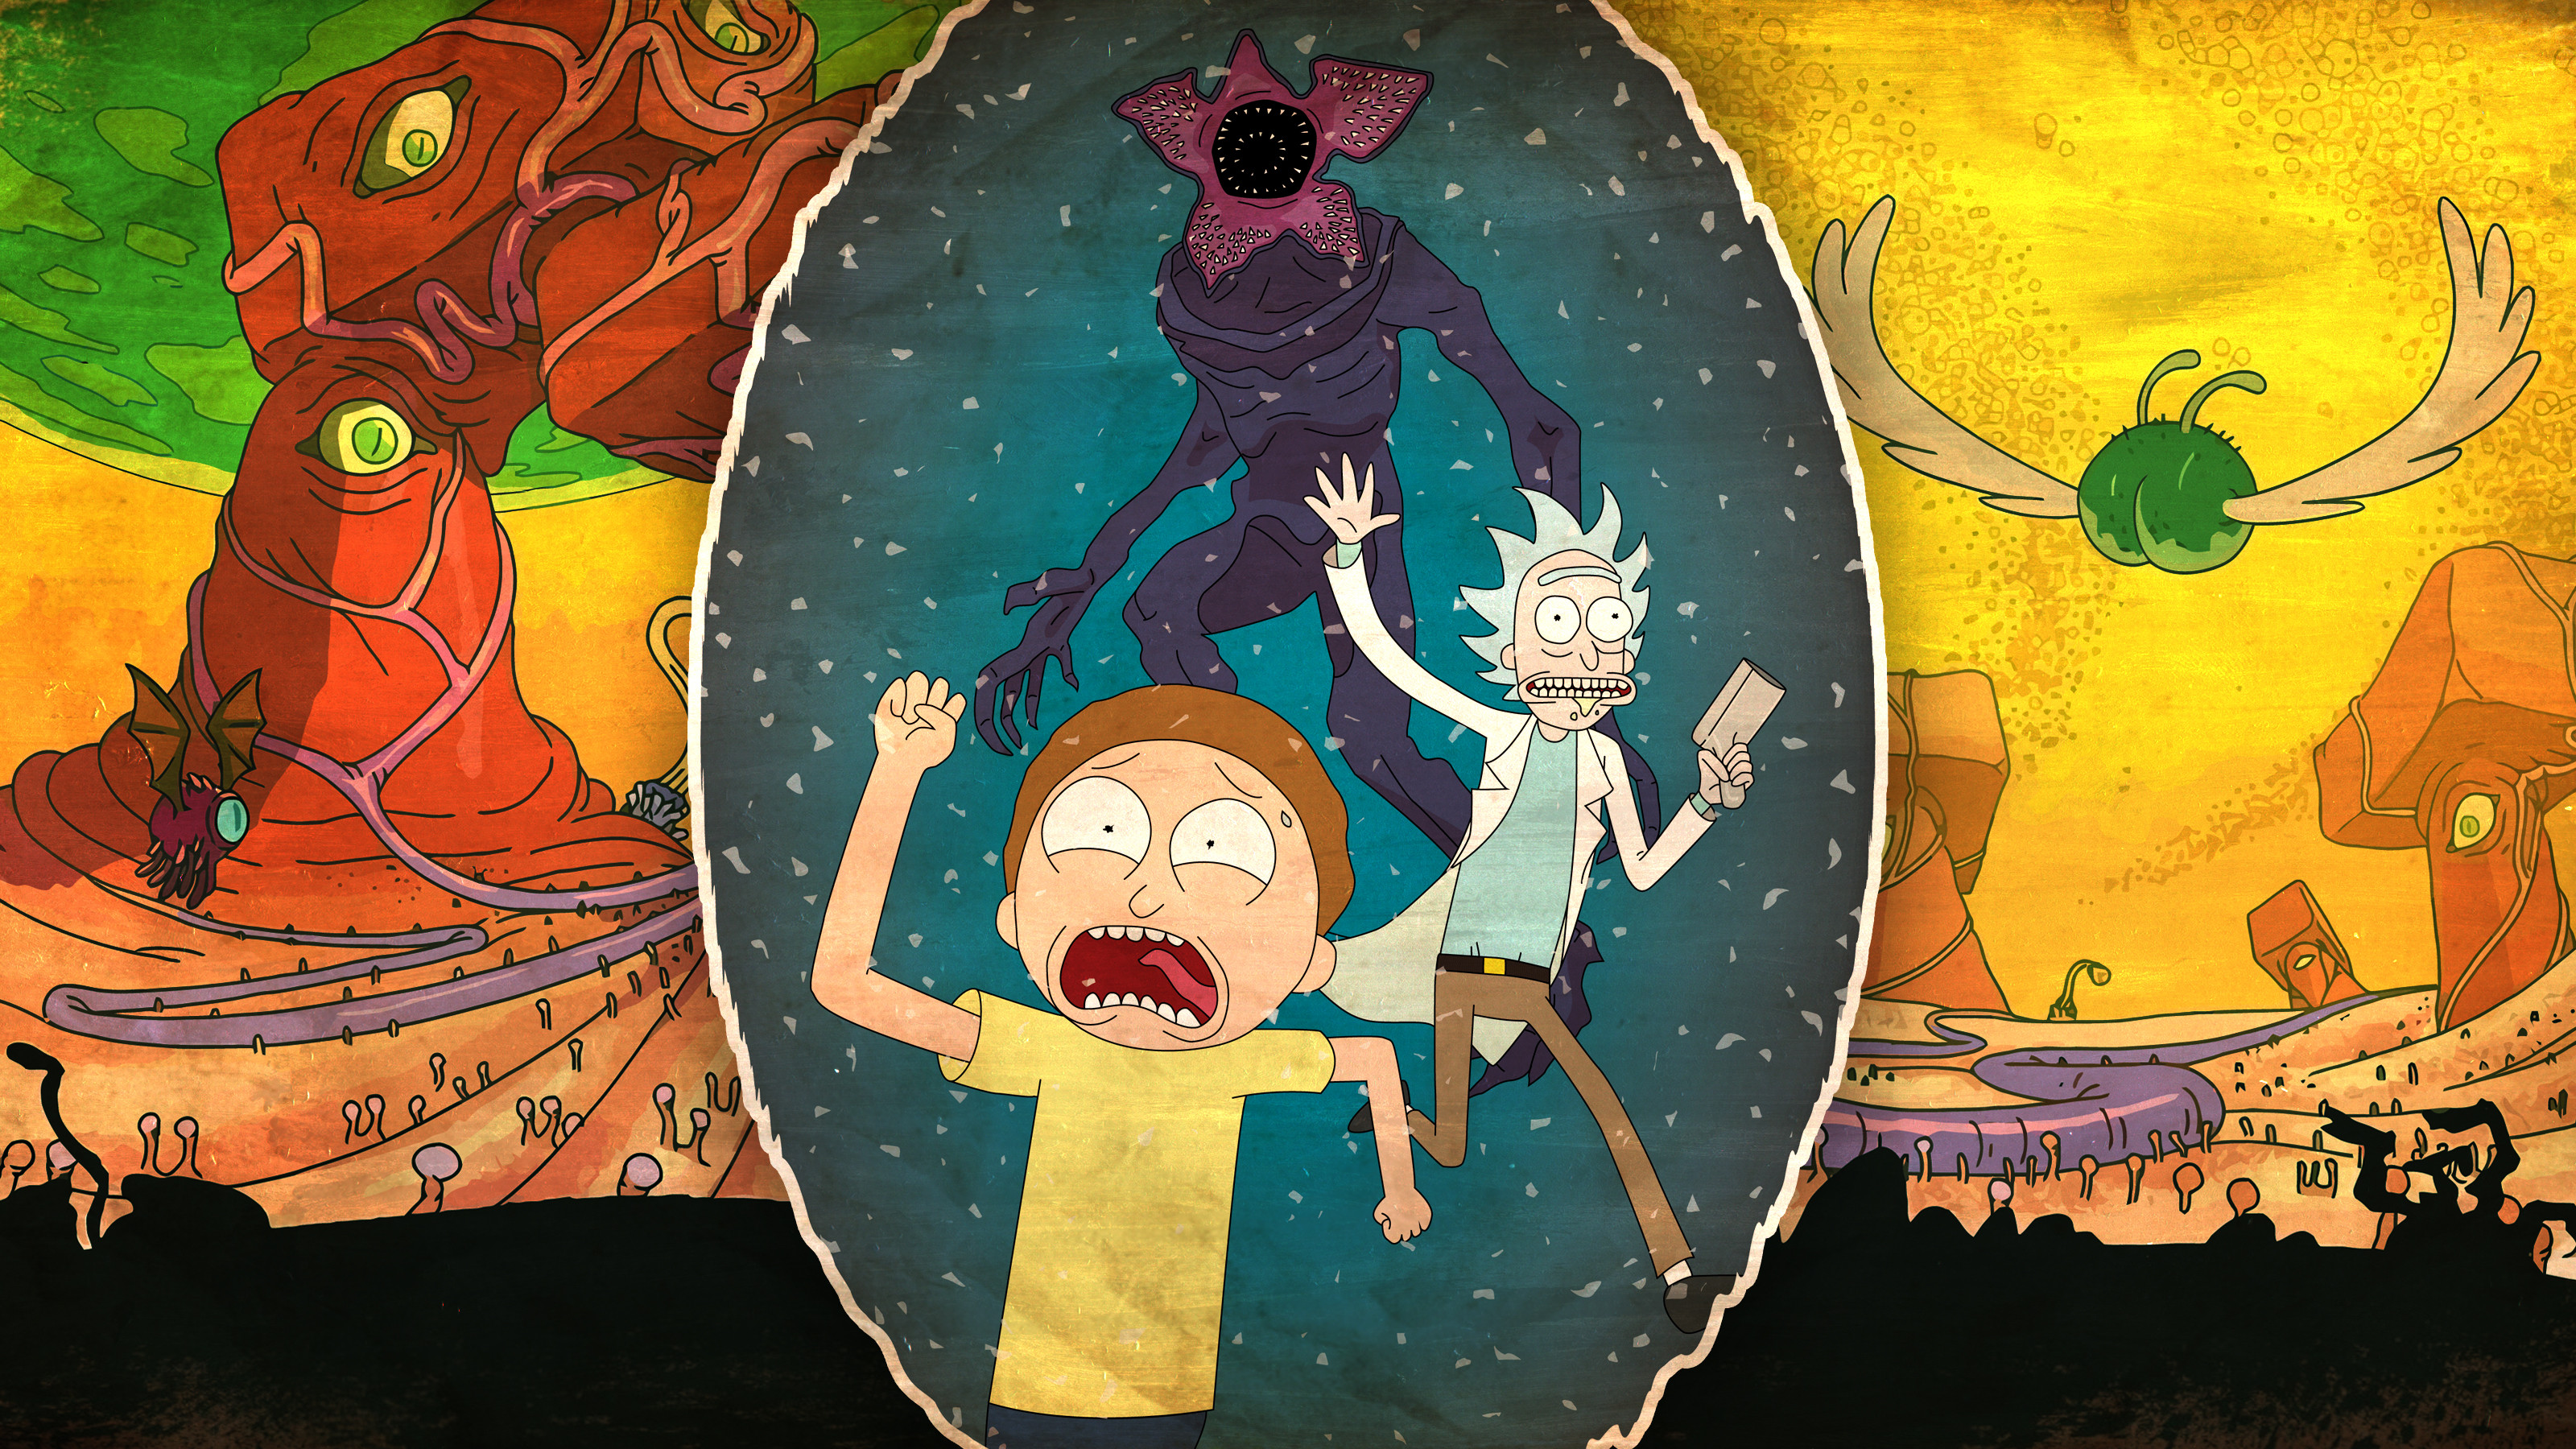 2560x1440 Rick And Morty 2017 1440P Resolution Wallpaper HD 3200x1800